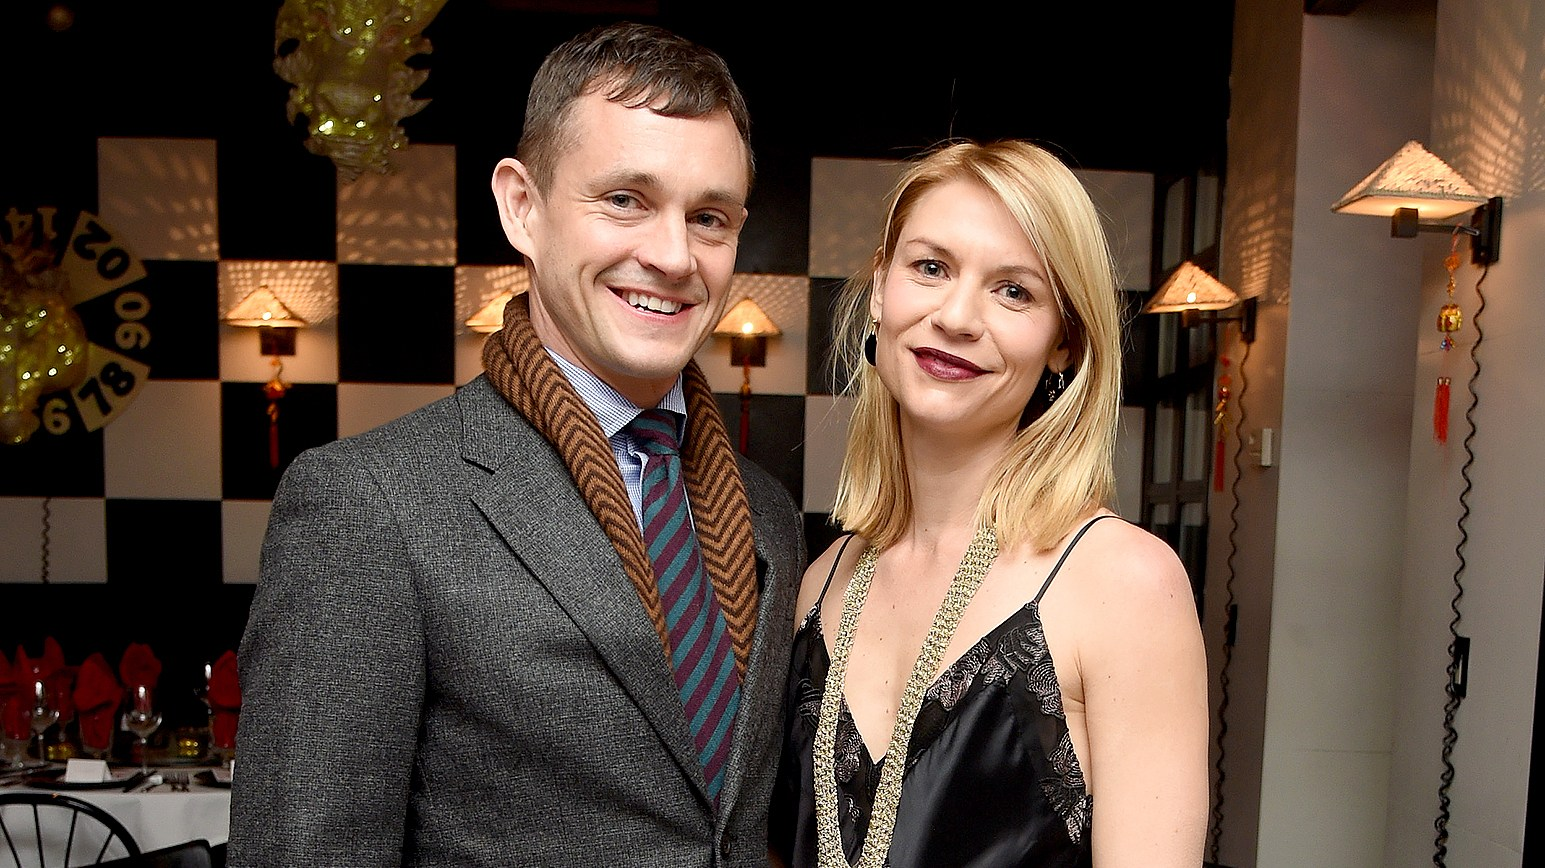 Hugh Dancy and Claire Danes at the Opening Ceremony celebrating the Lunar New Year at Shun Lee Cafe, New York, NY, on January 28, 2017.